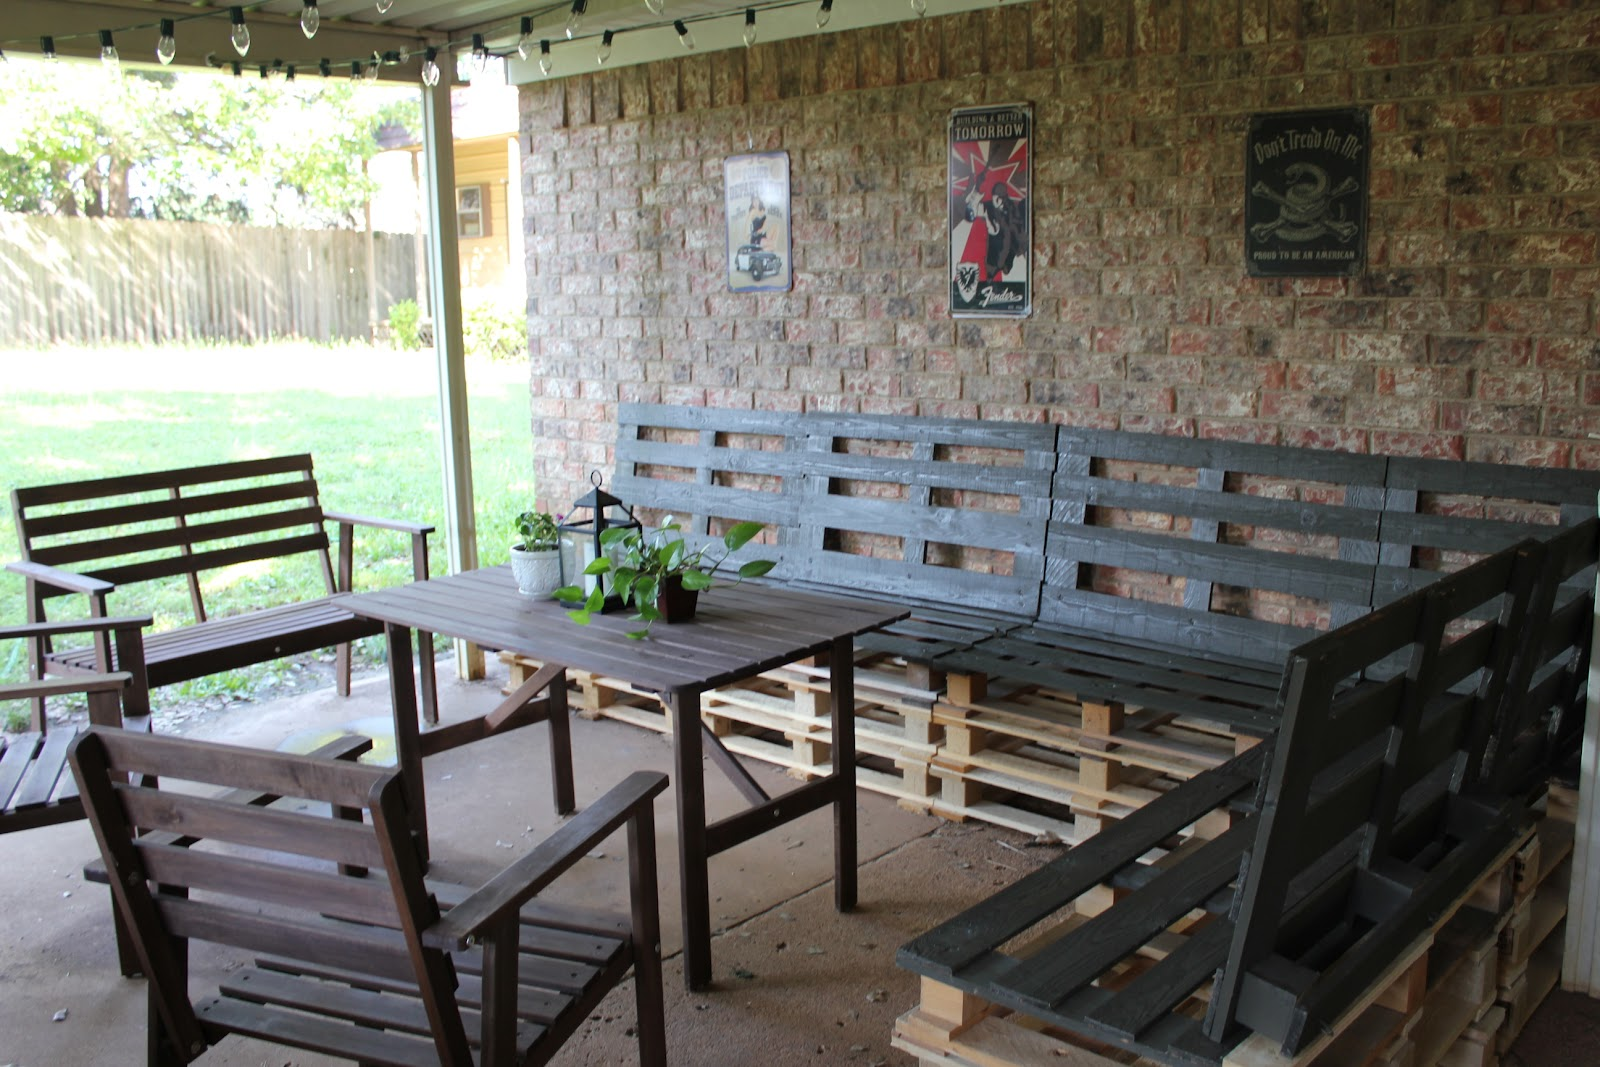 Outdoor Patio Furniture Made From Pallets diy outdoor patio furniture from pallets